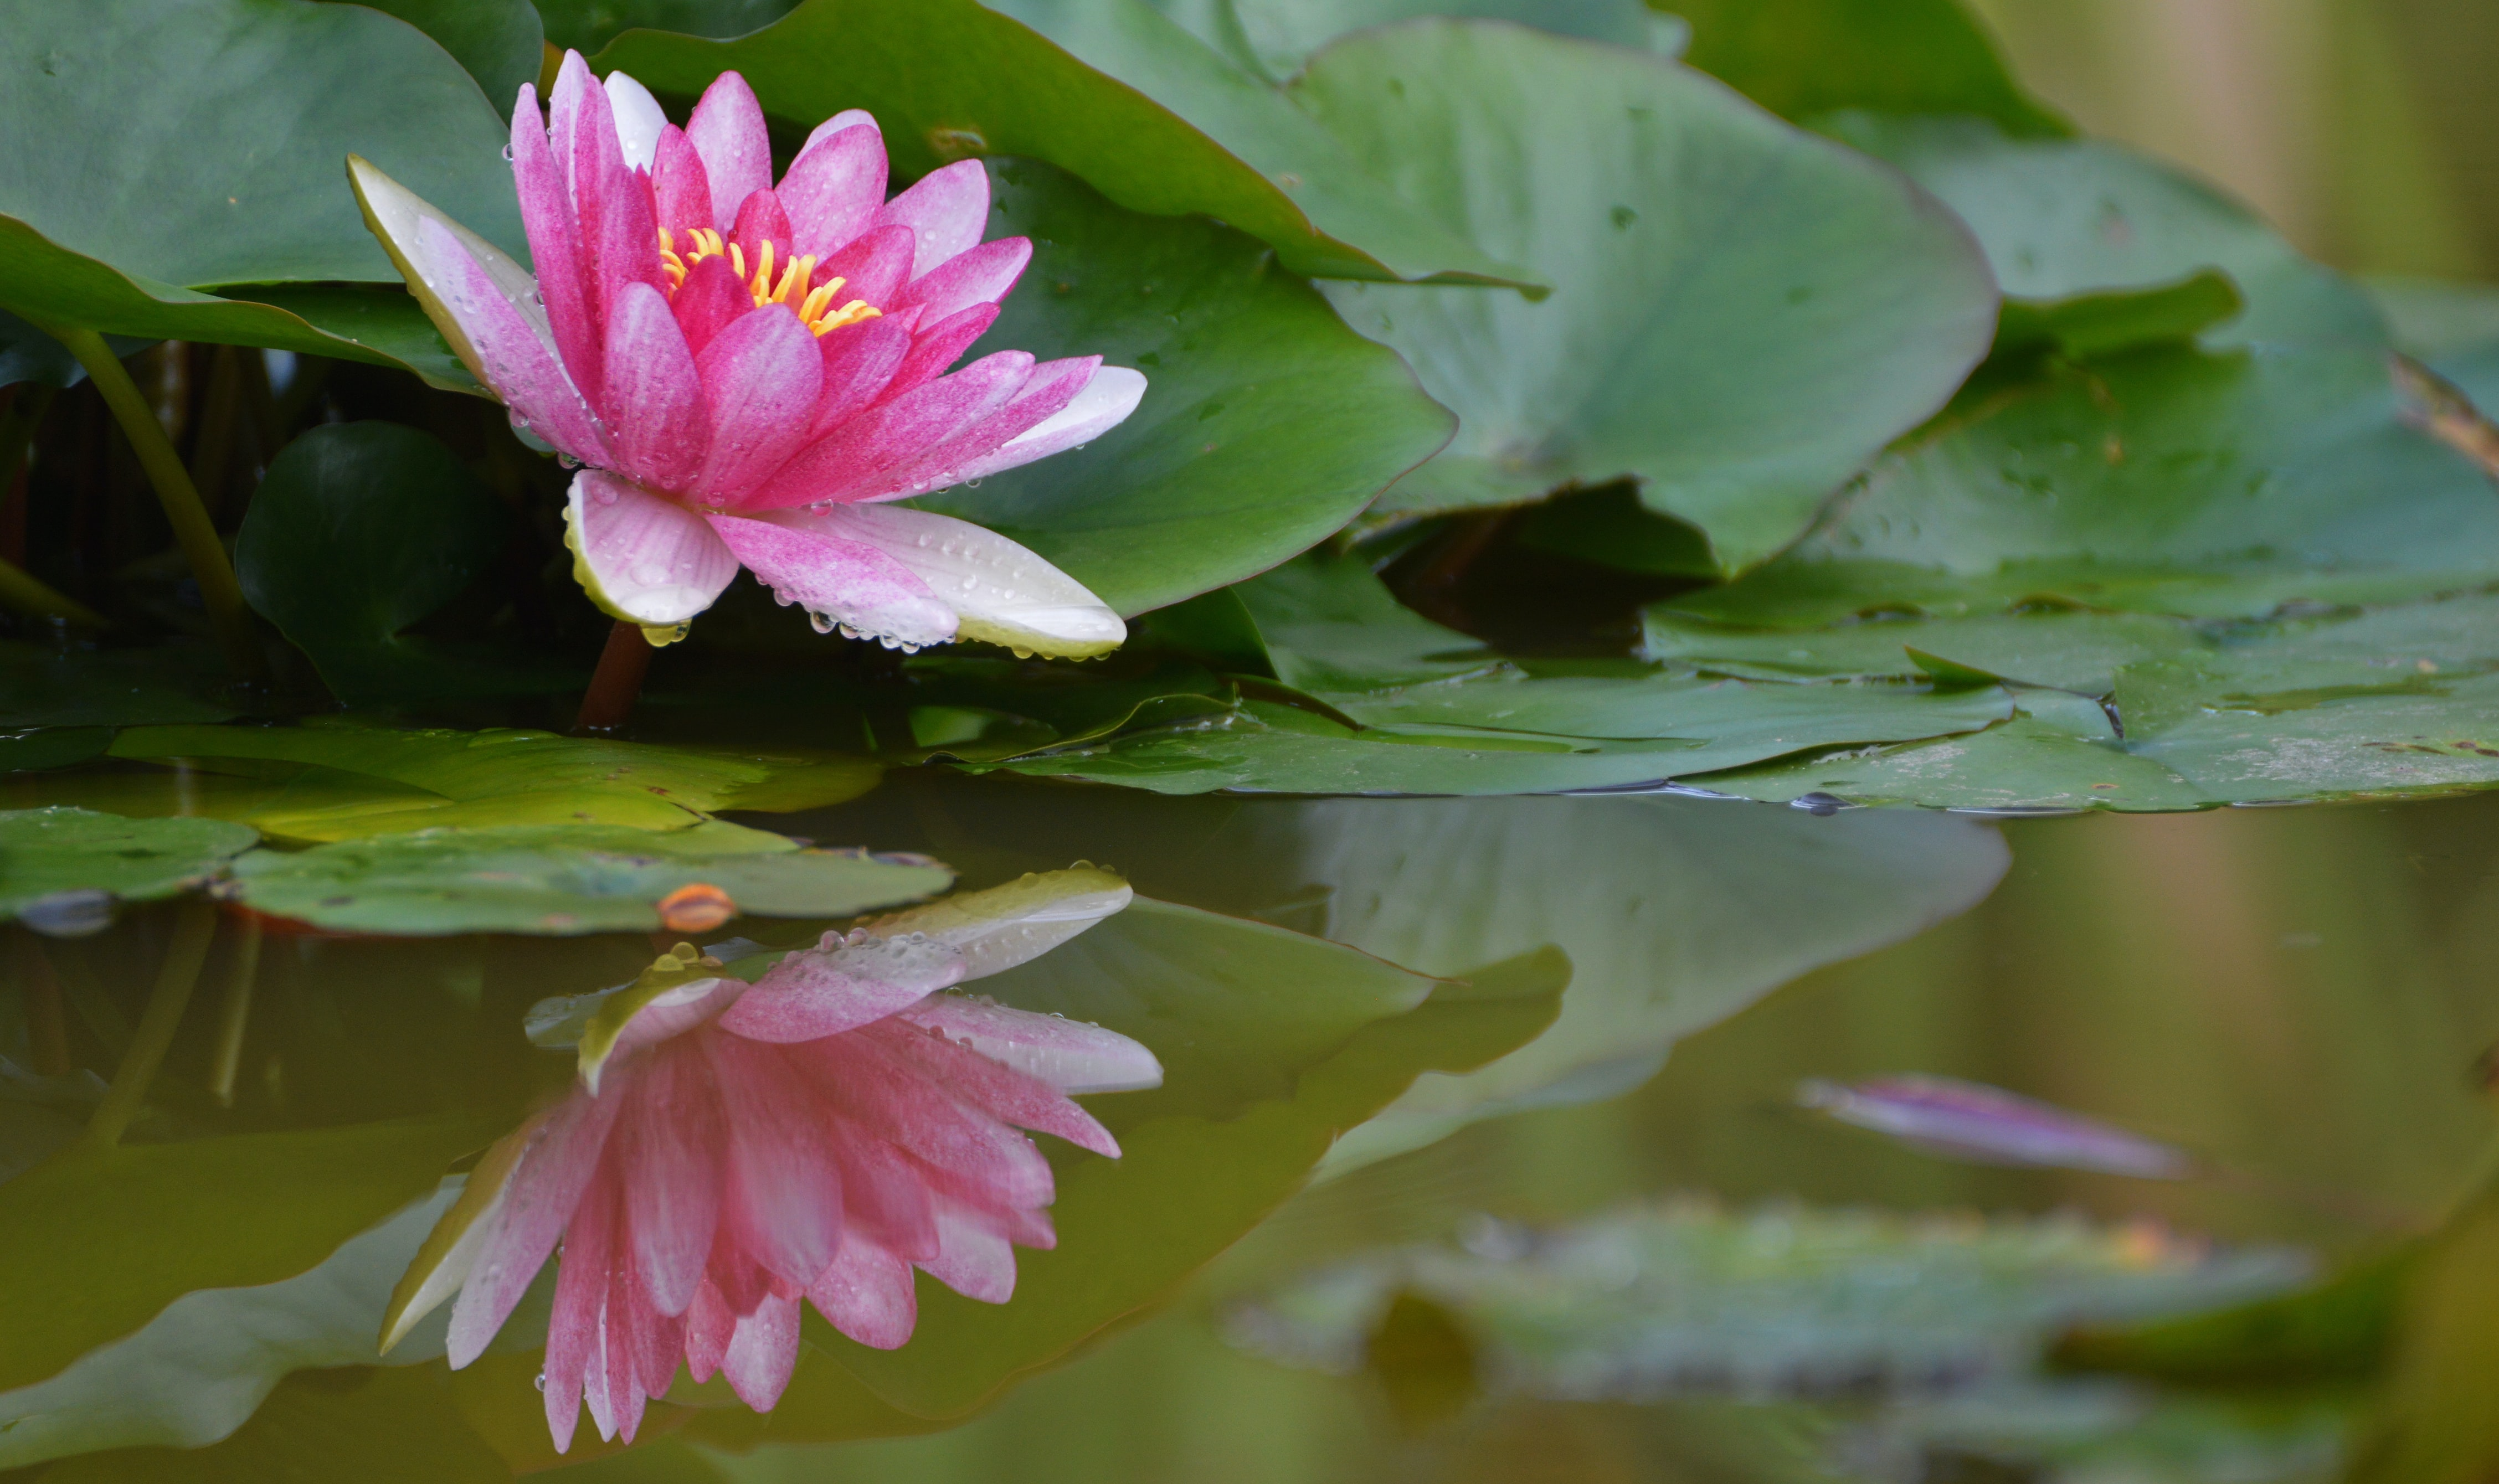 pink lotus flower on river close-up photo